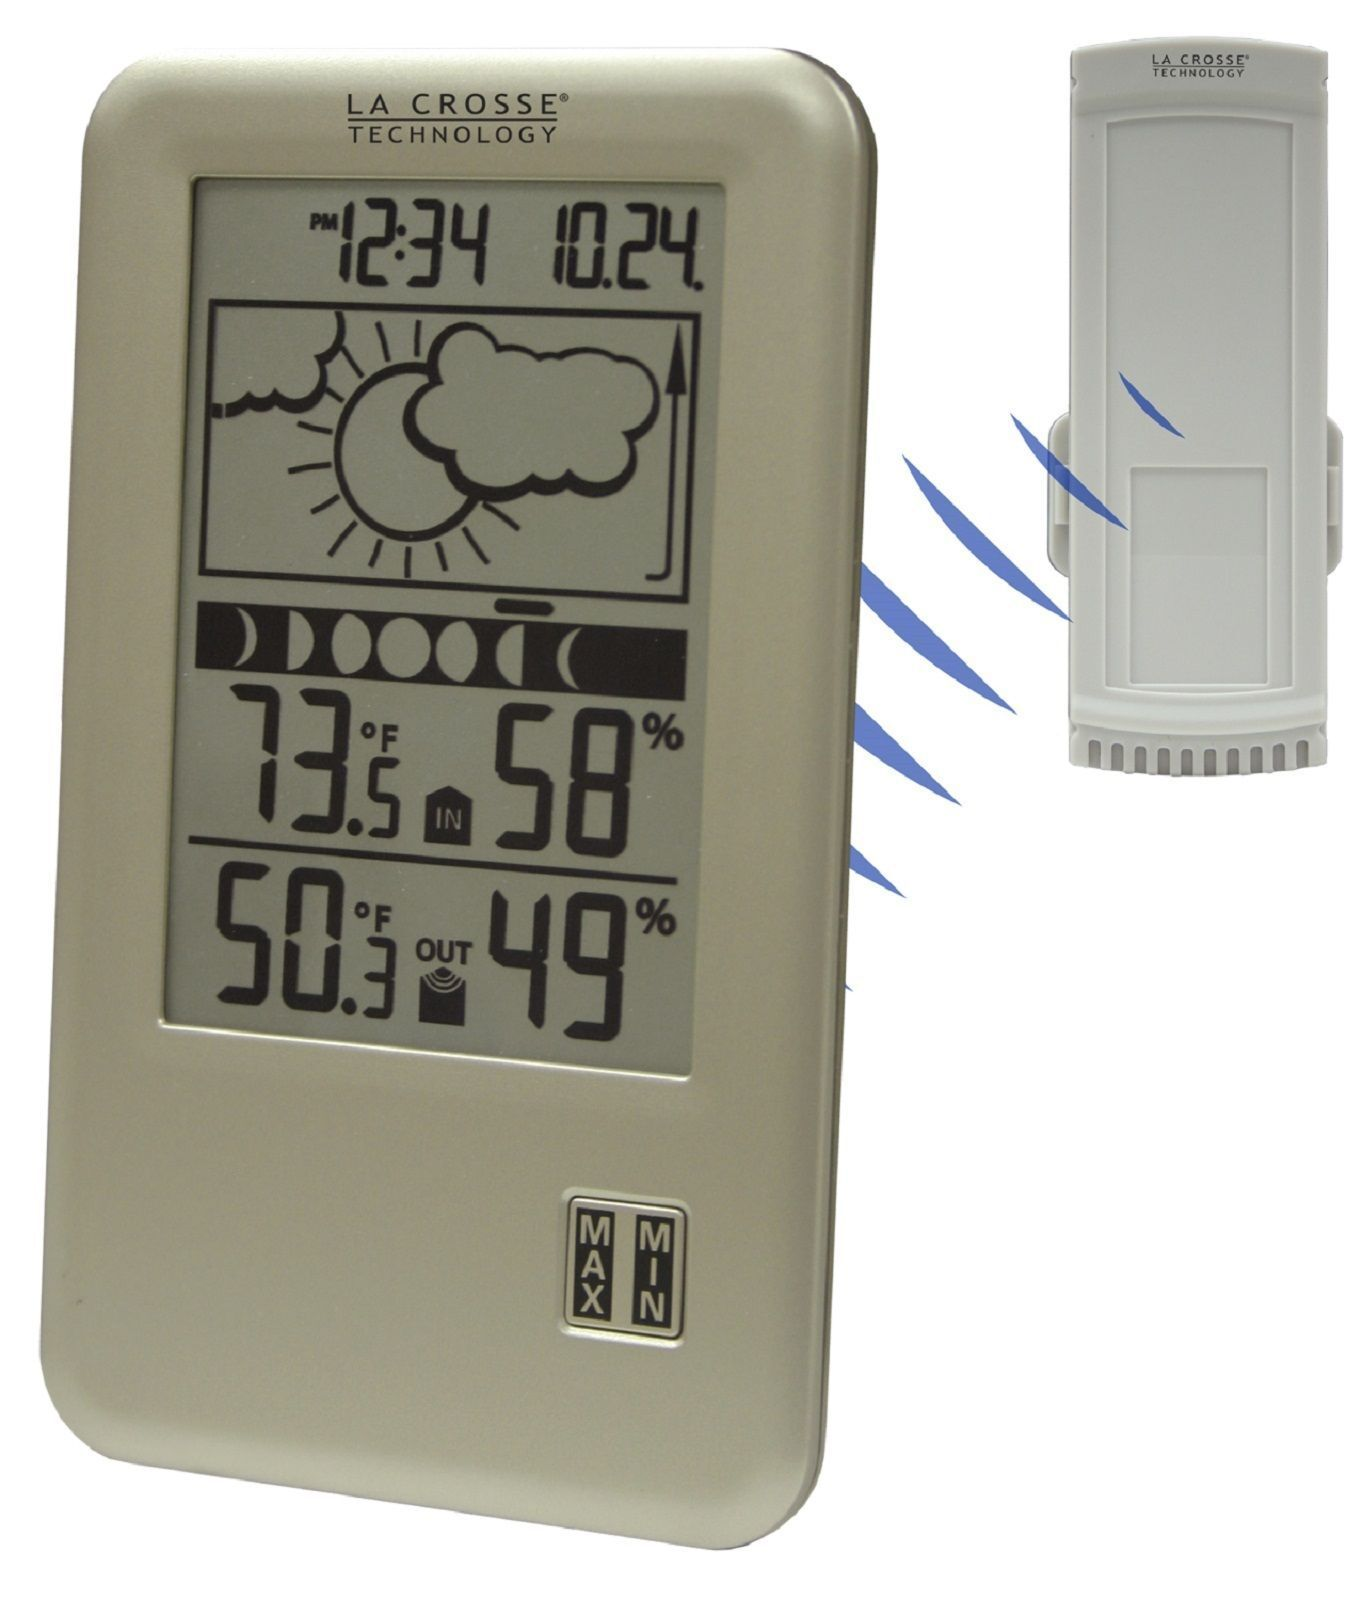 NEW La Crosse WS-9060 Wireless Digital Forecast Station with Moon Phase TX45UTH